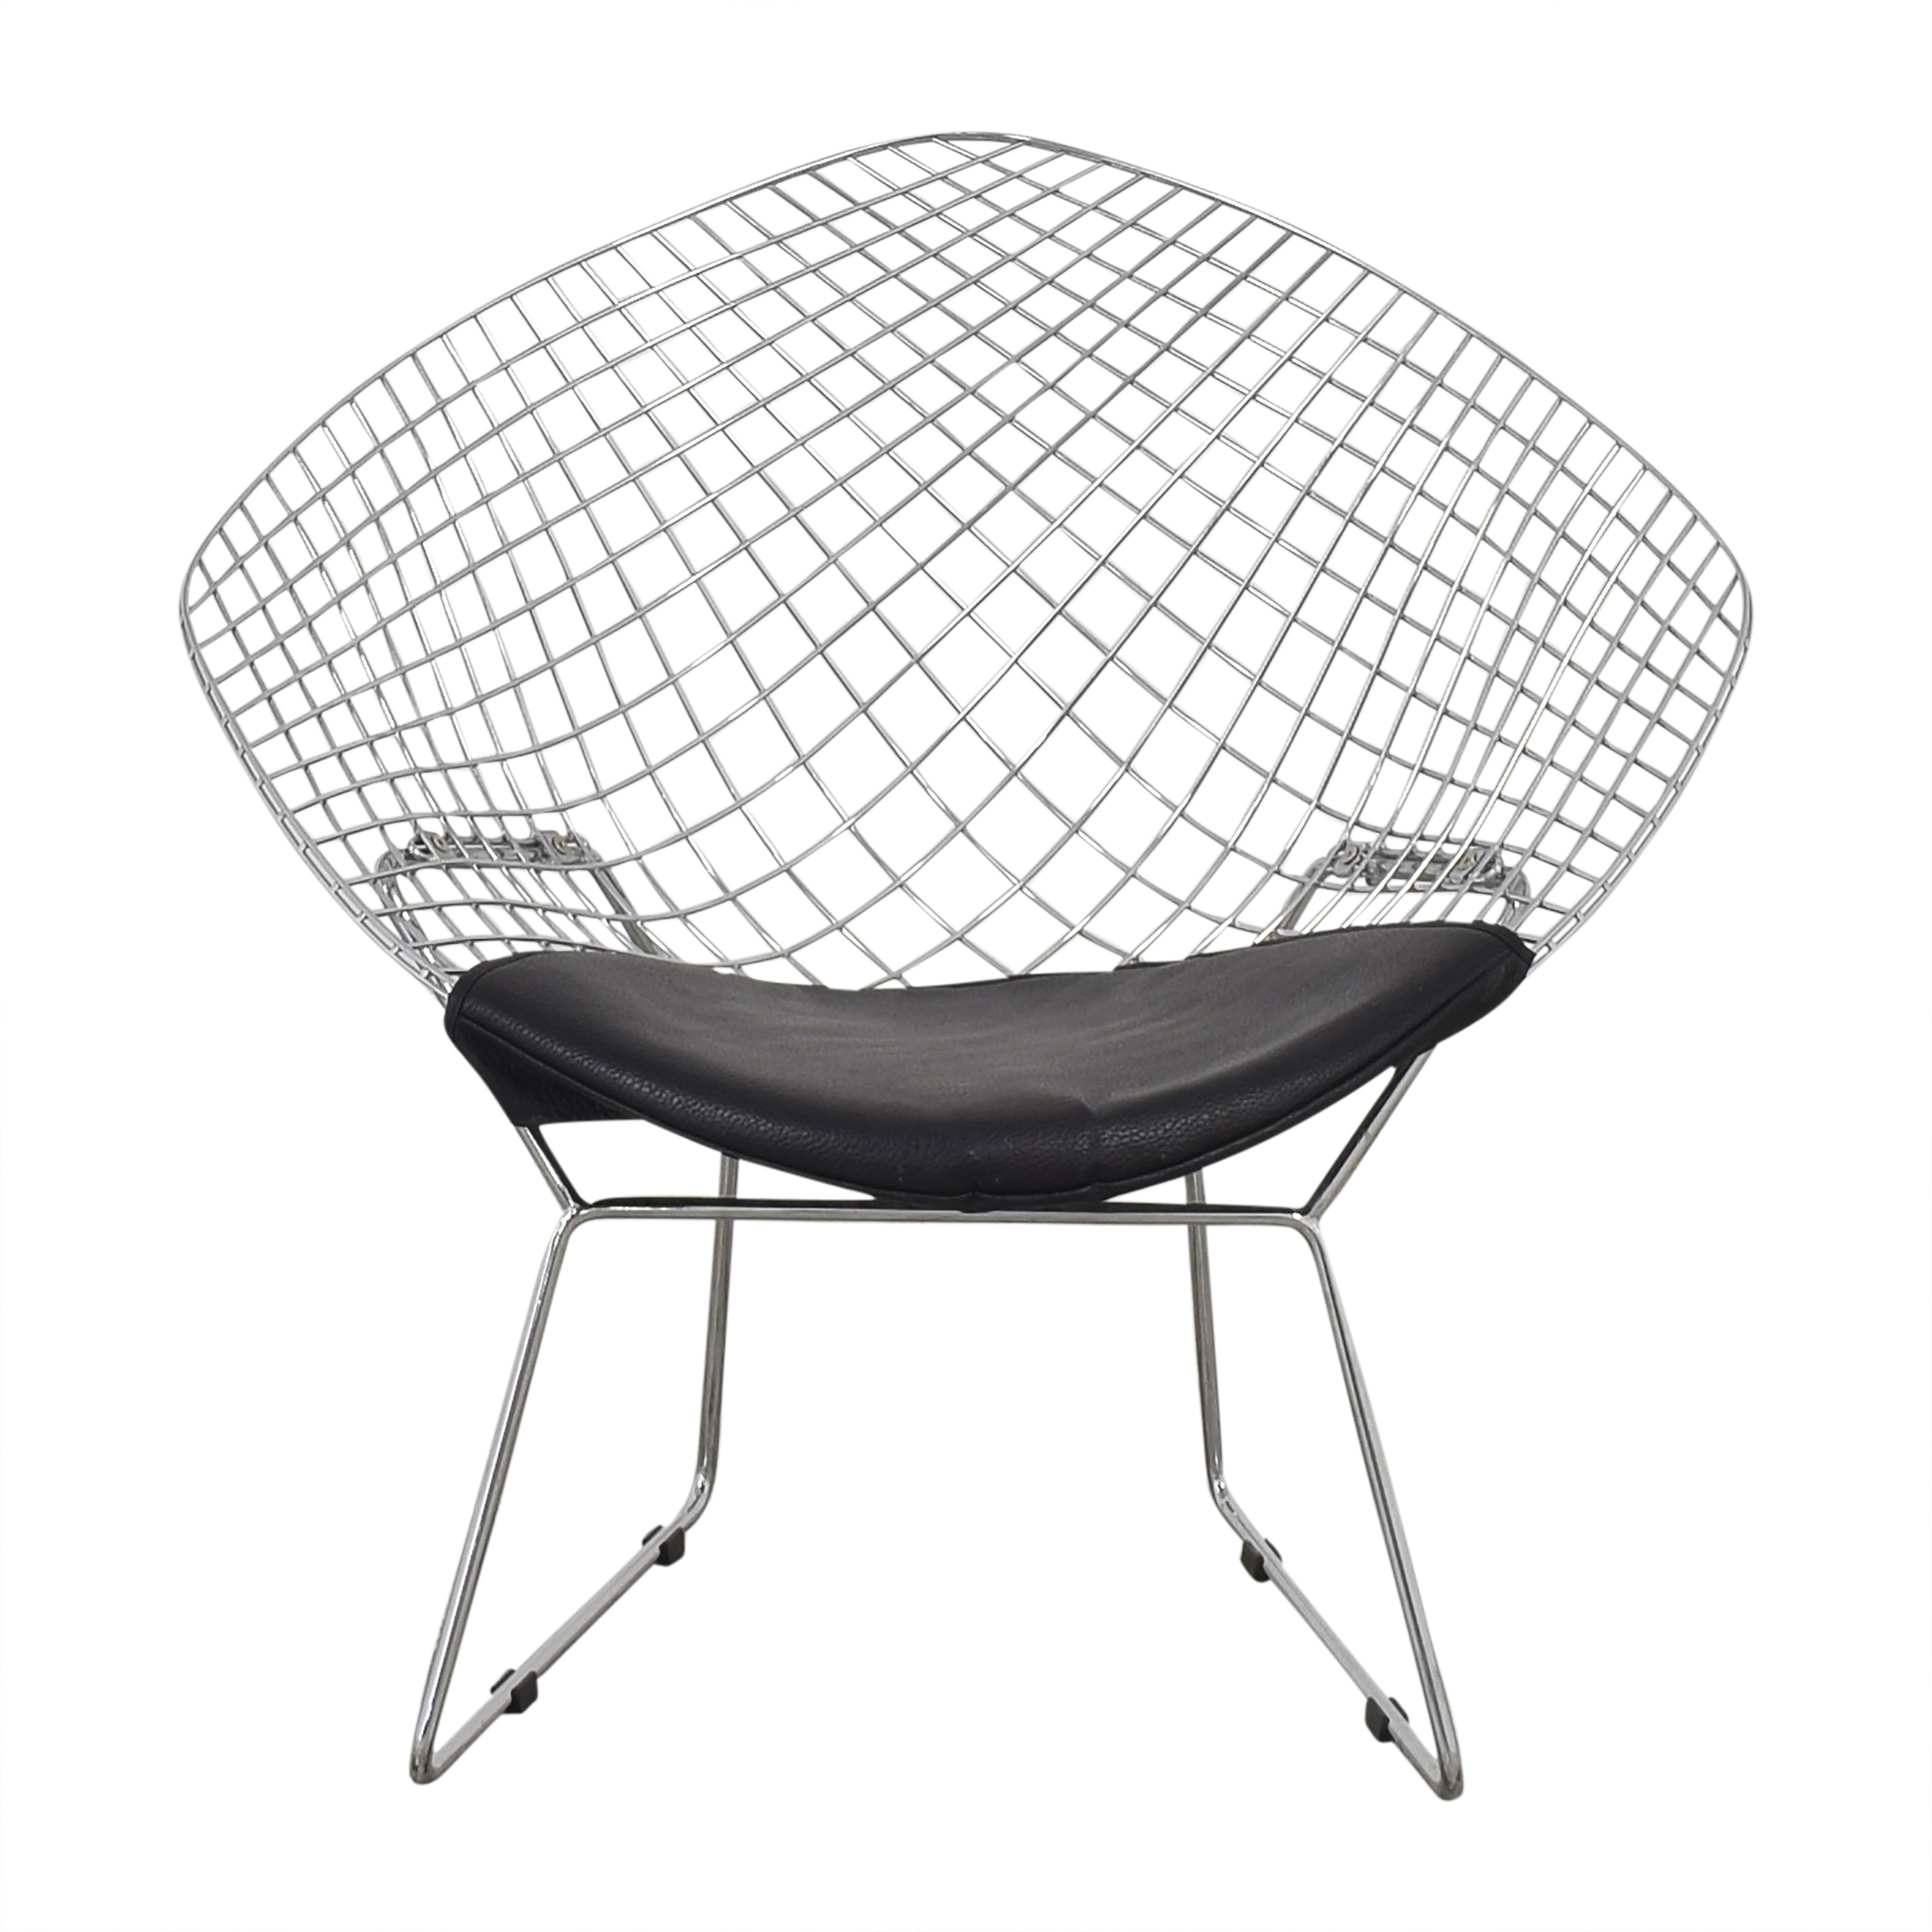 Alphaville Design Alphaville Design Legare Tri Chair black and silver